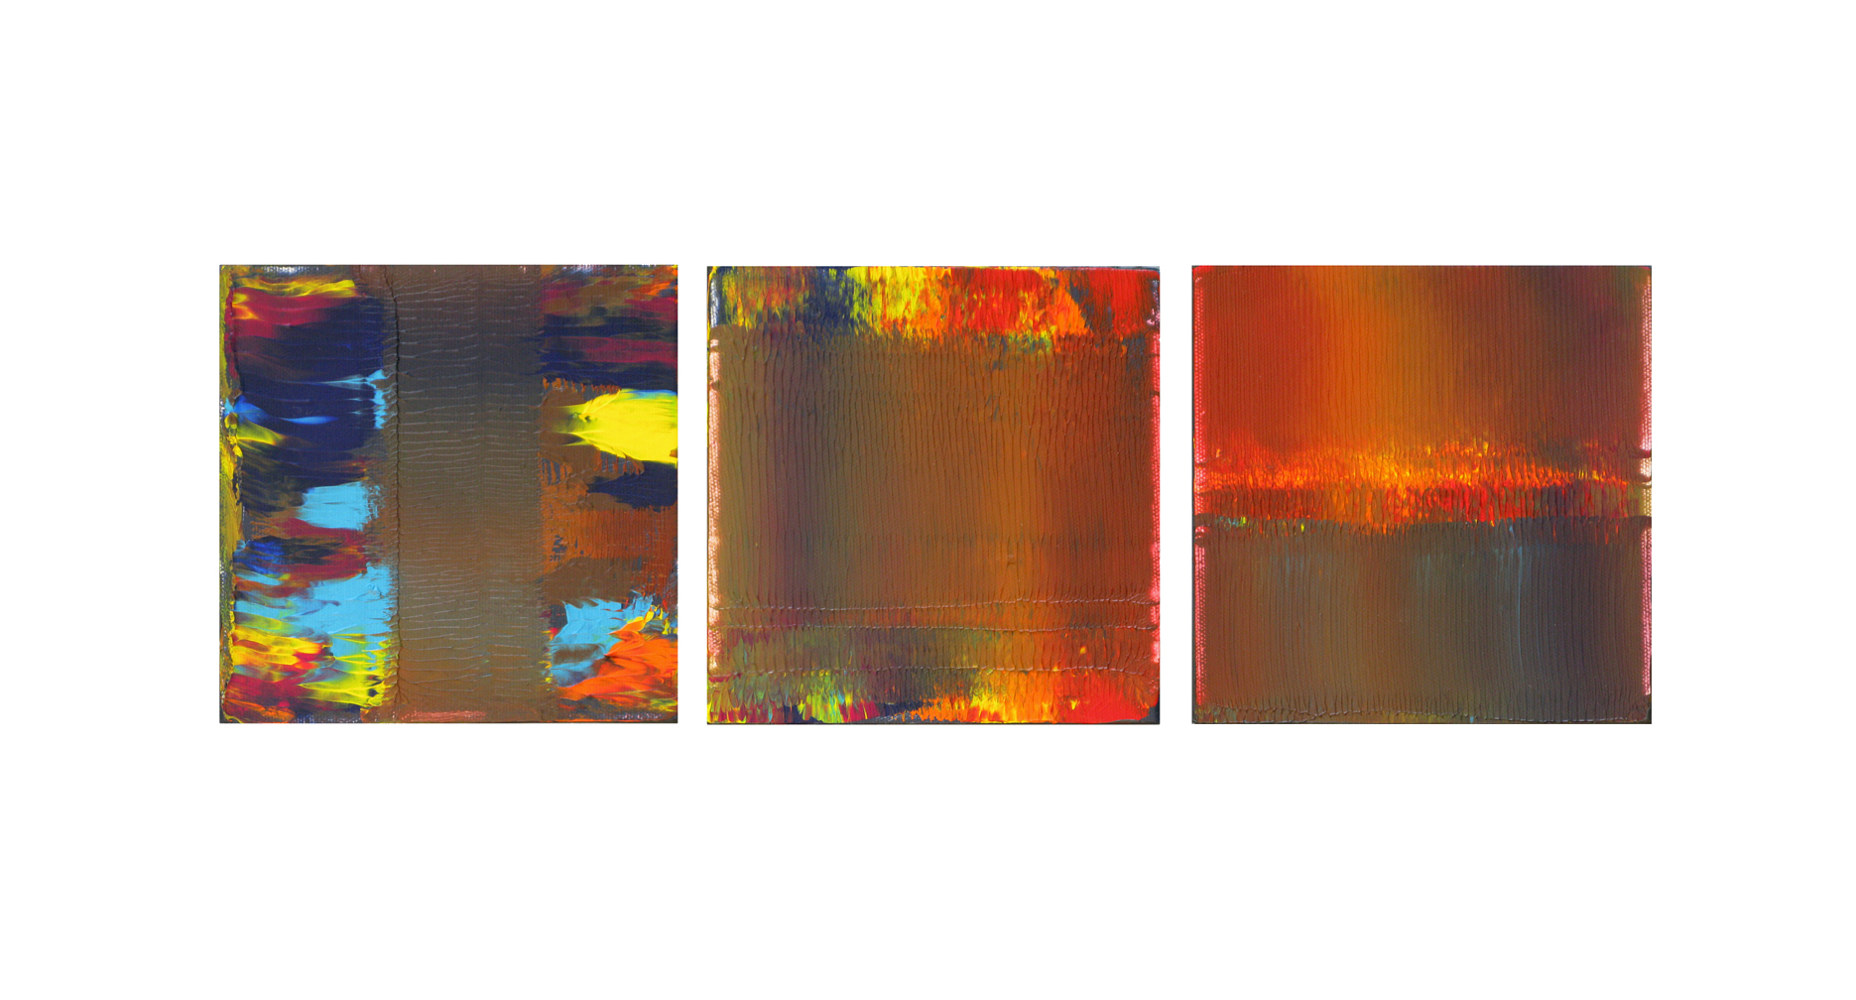 Acrylic painting Deep Sunset, 6x6 inches each by Hooshang Khorasani